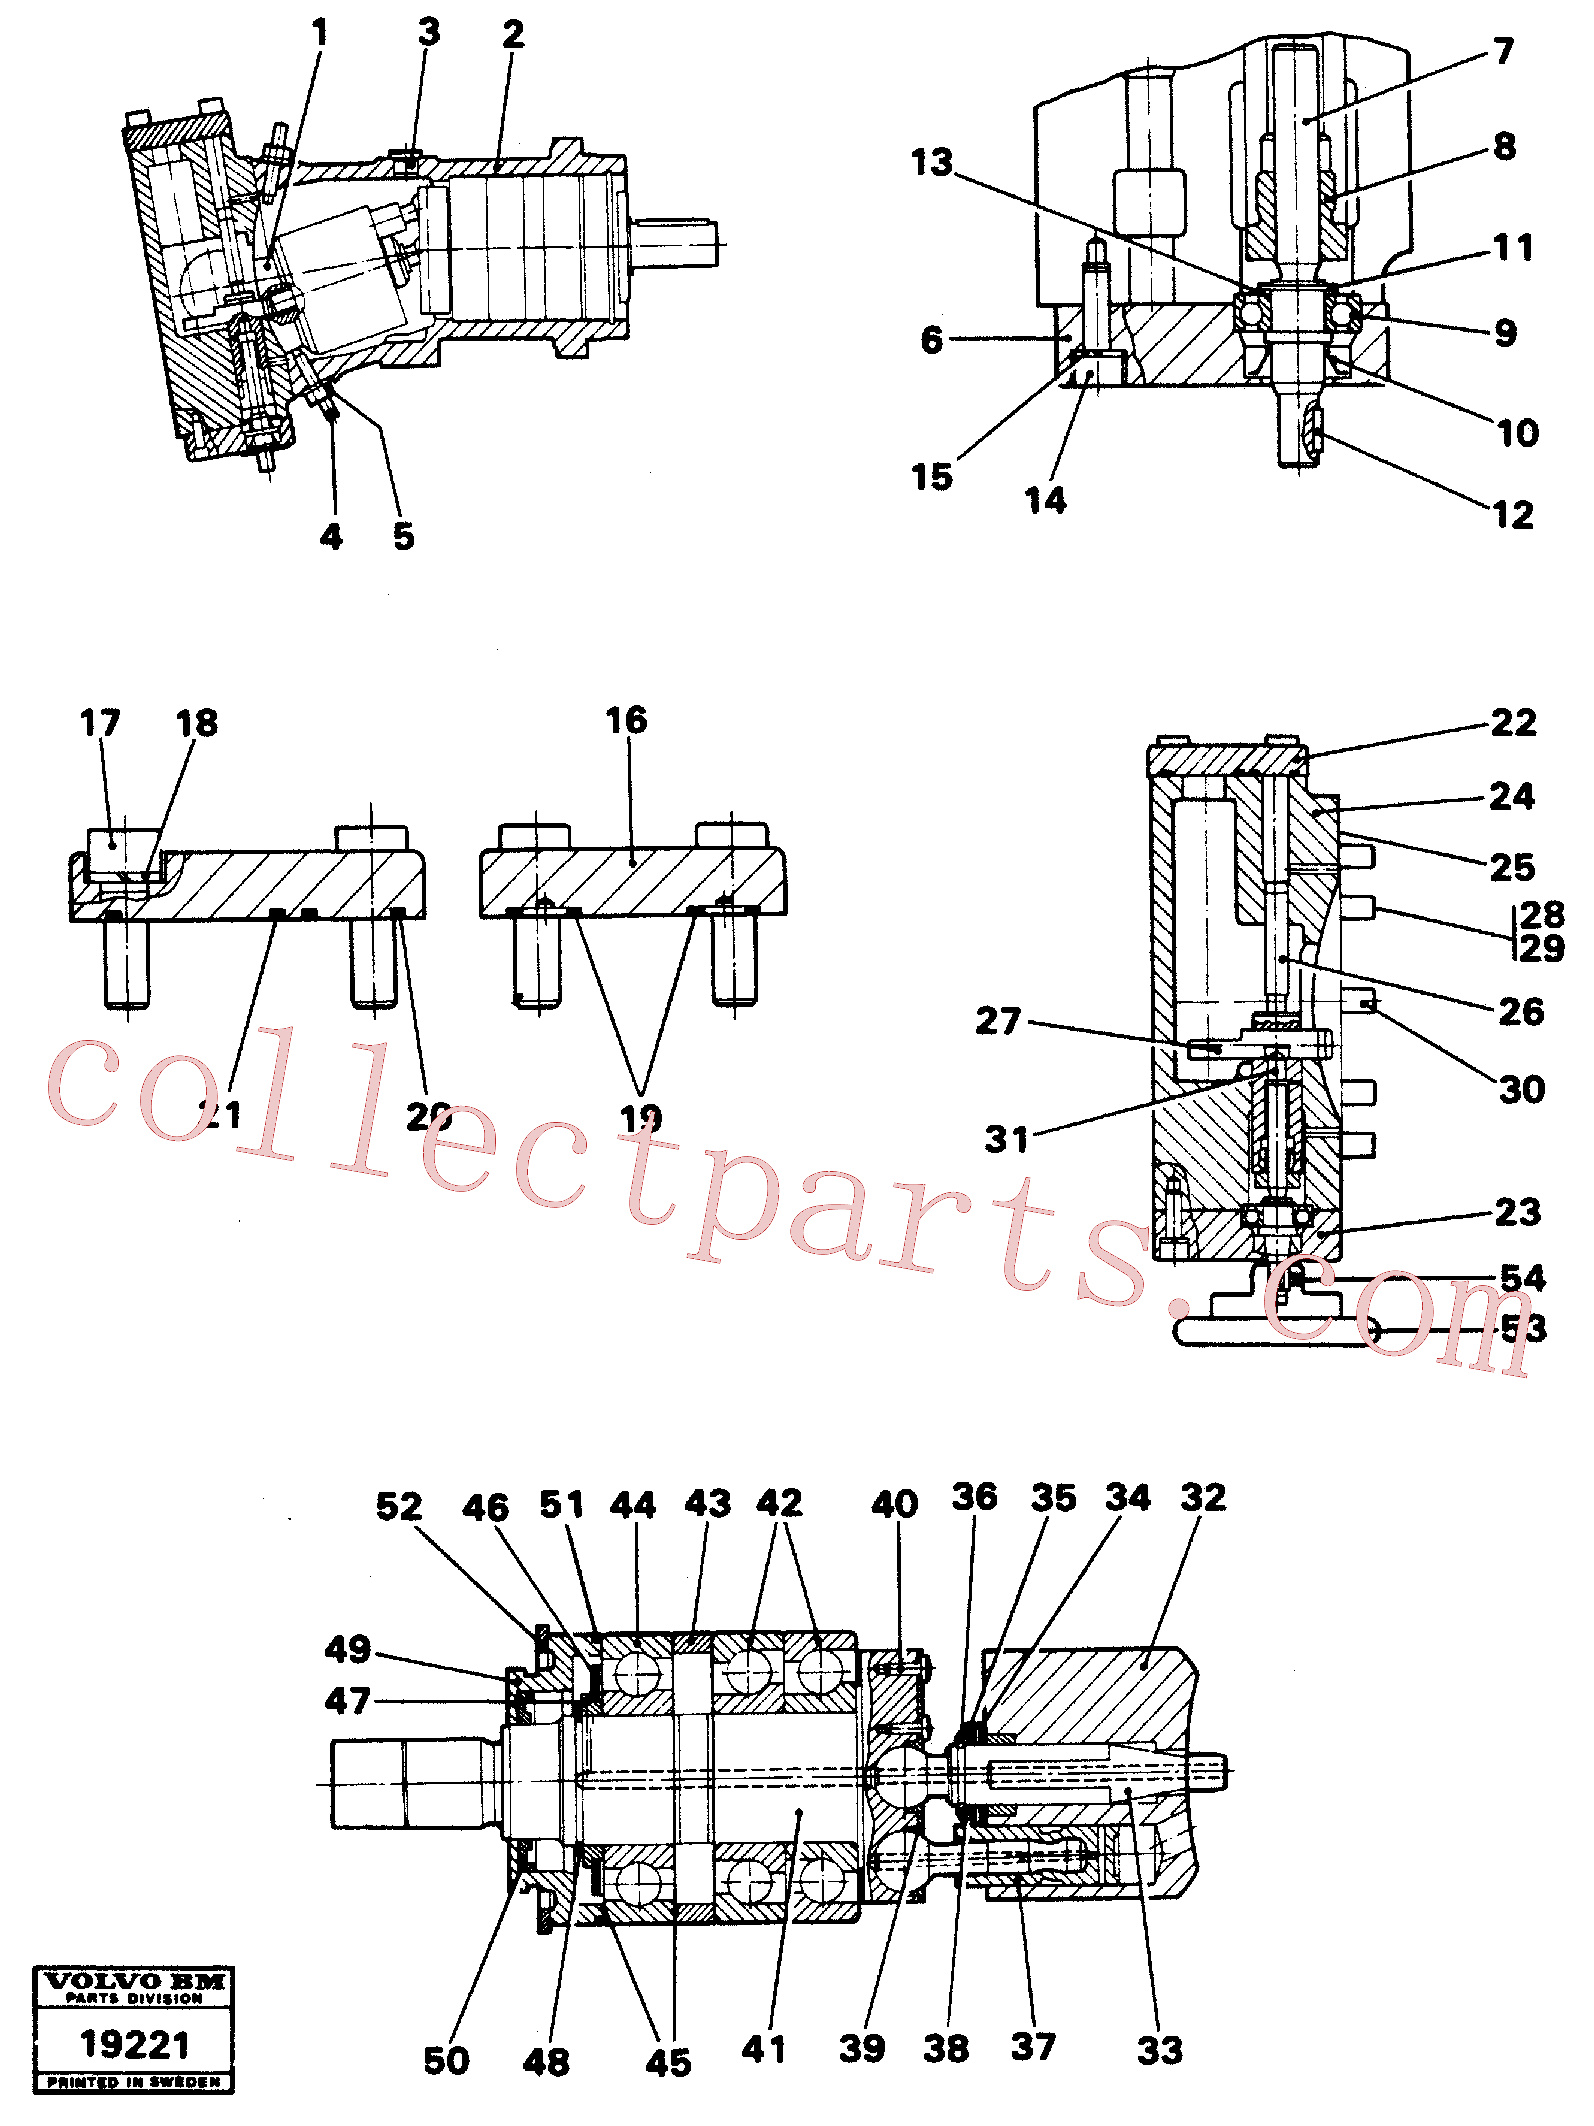 VOE11702191 for Volvo Hydraulic pump(19221 assembly)